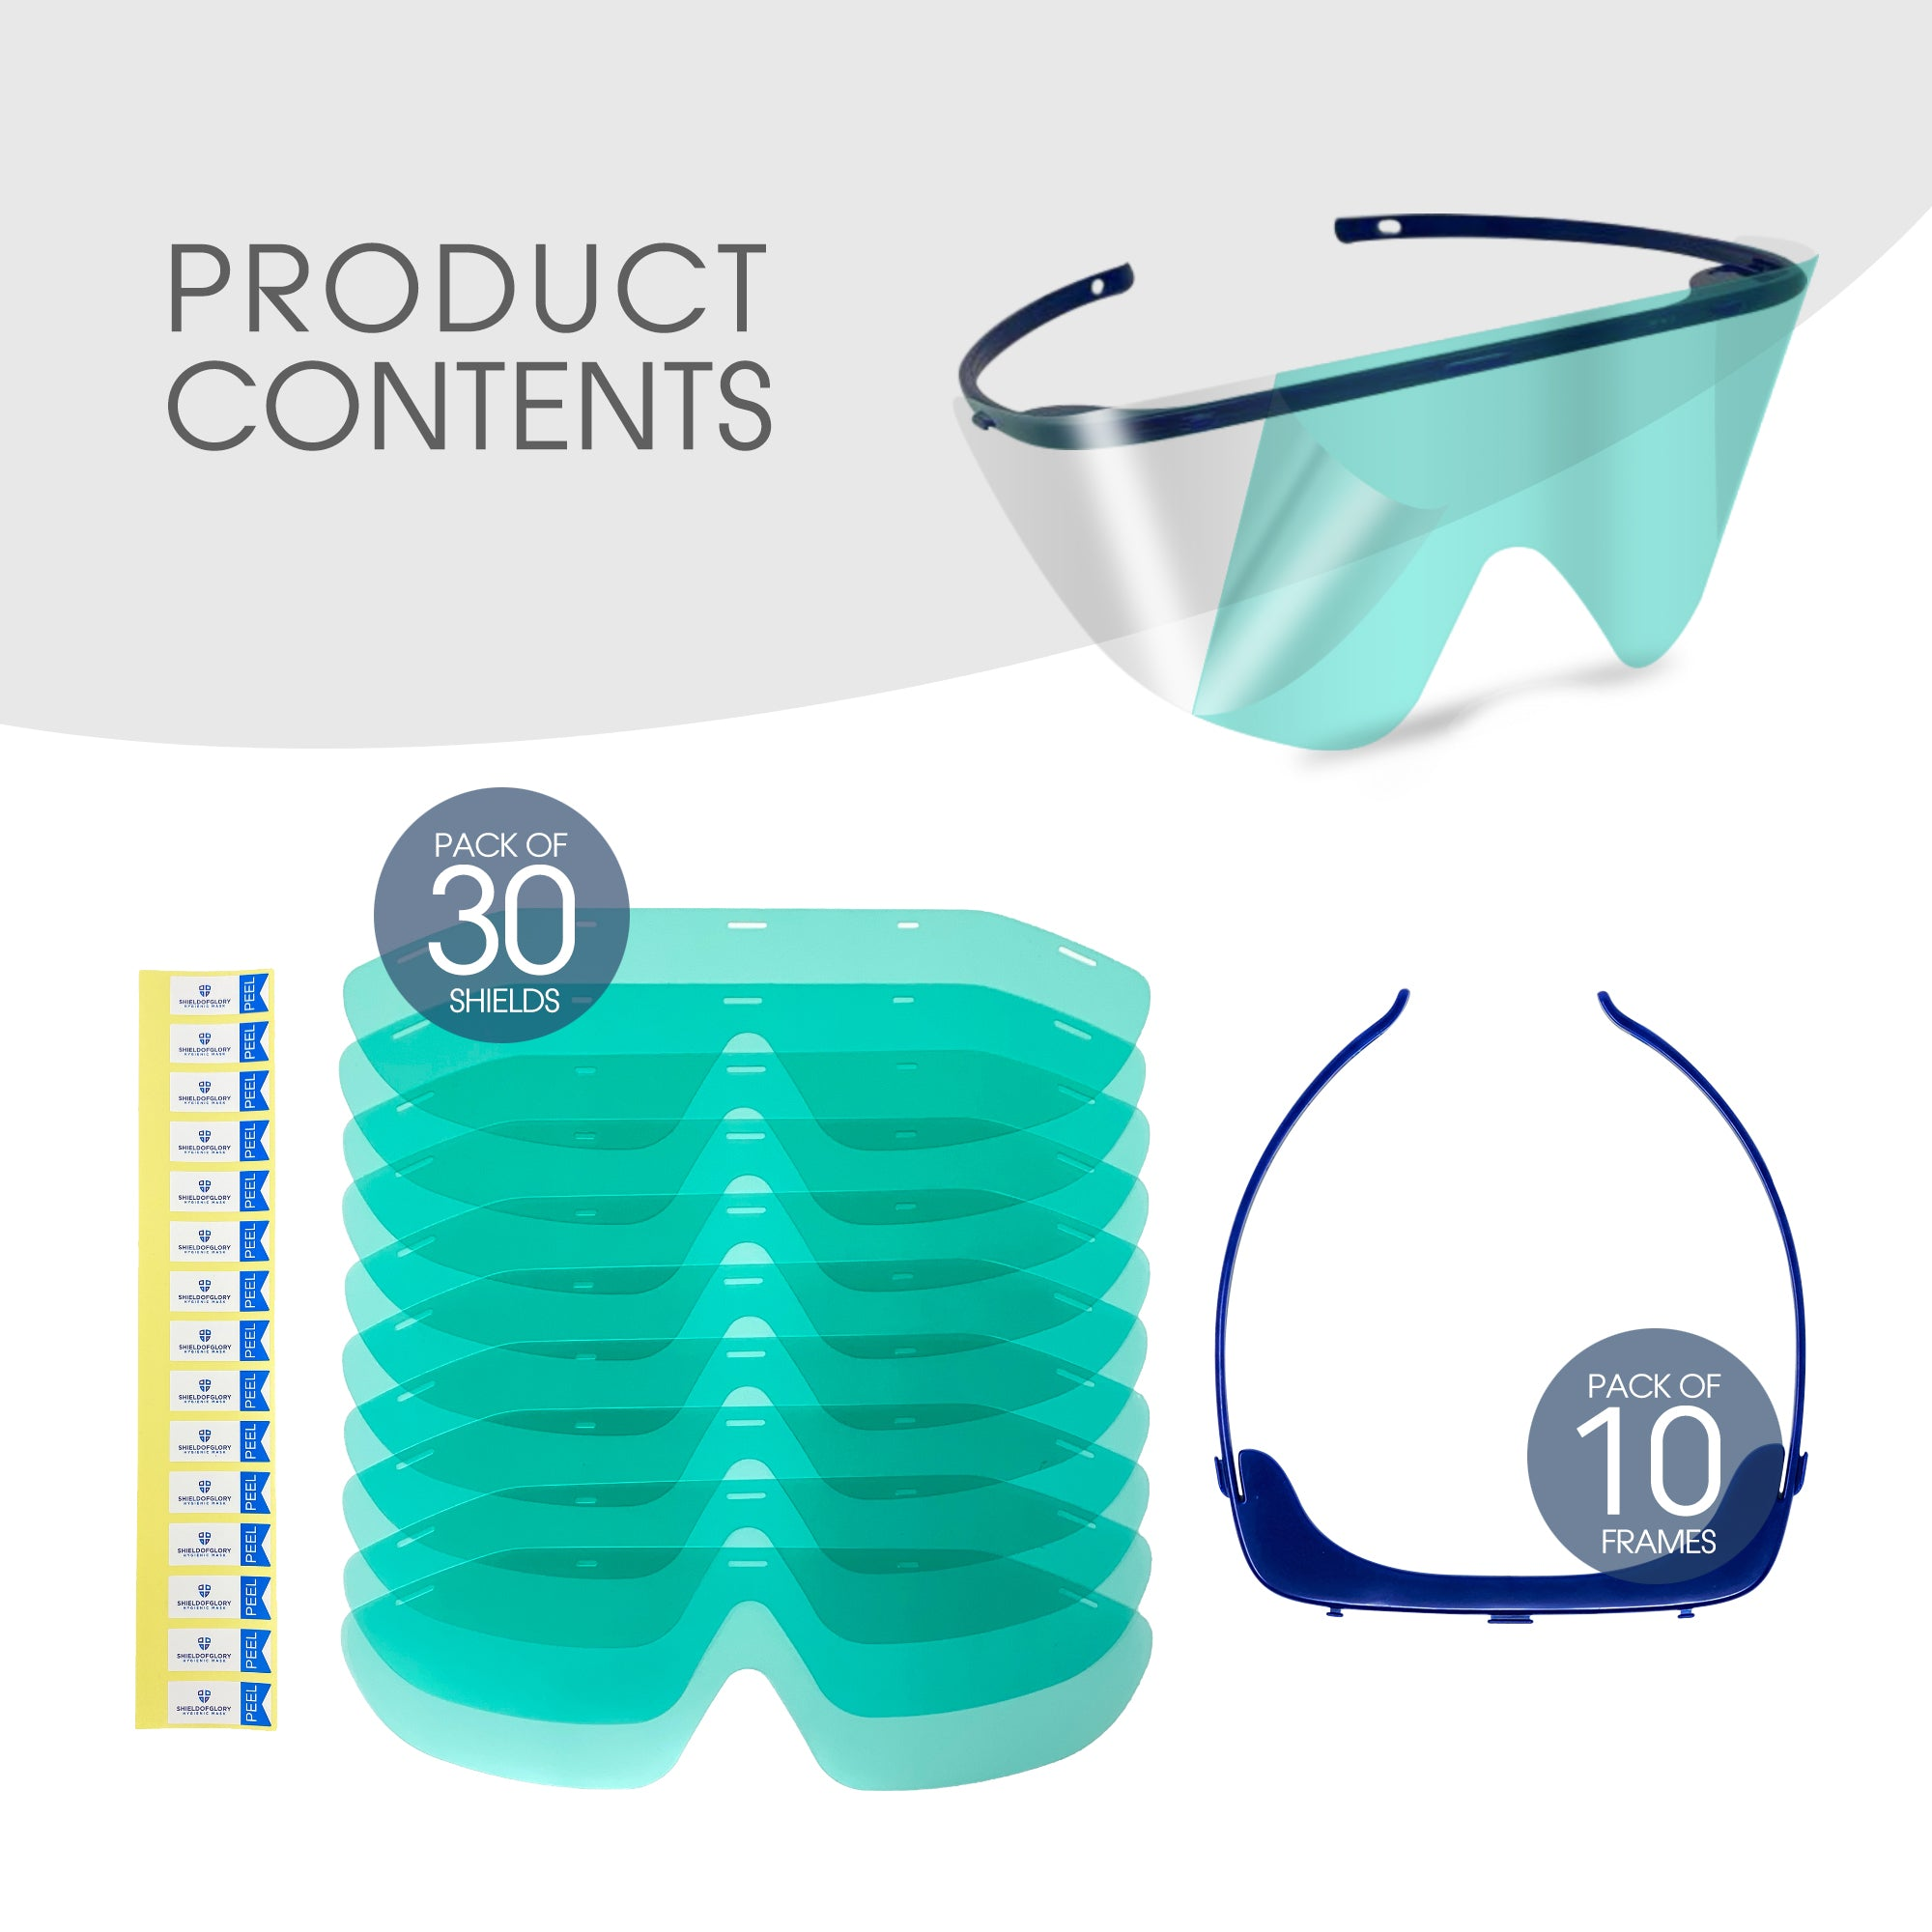 SG530 Eye protection glasses-Reusable (10 Frames + 30 Shields)